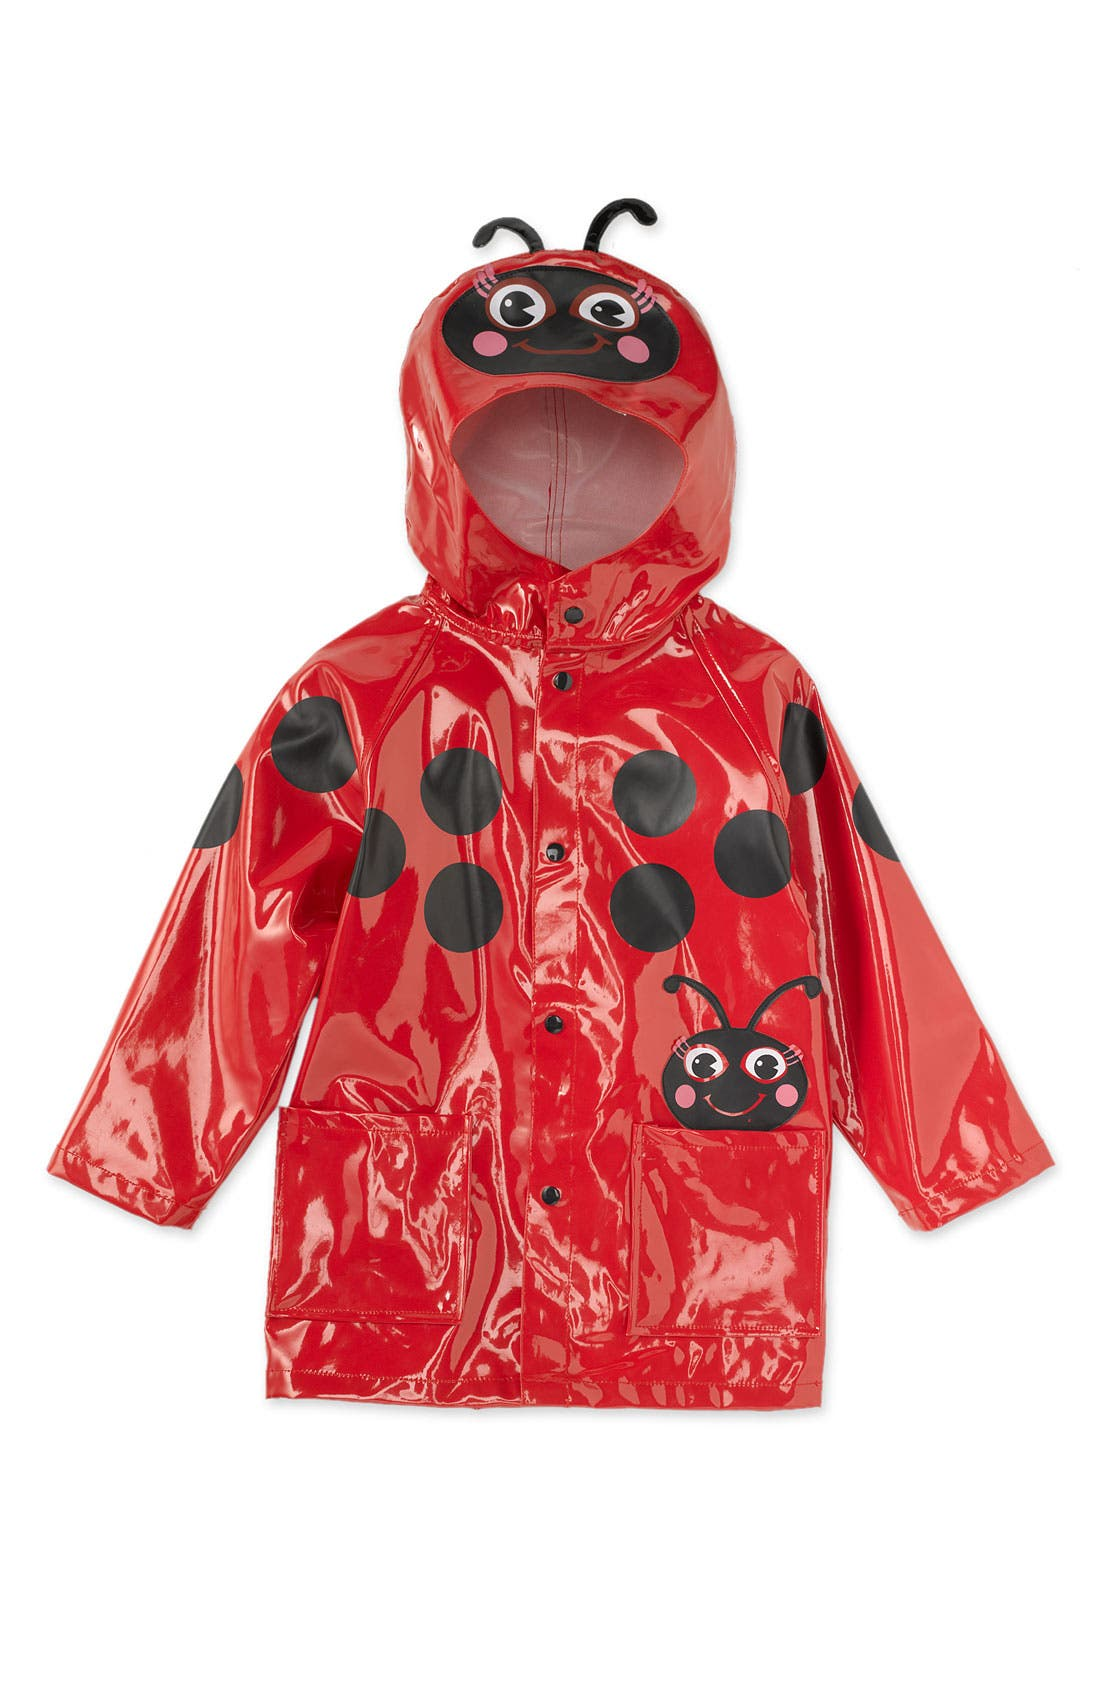 Main Image - Western Chief 'Ladybug' Raincoat (Little Kid)